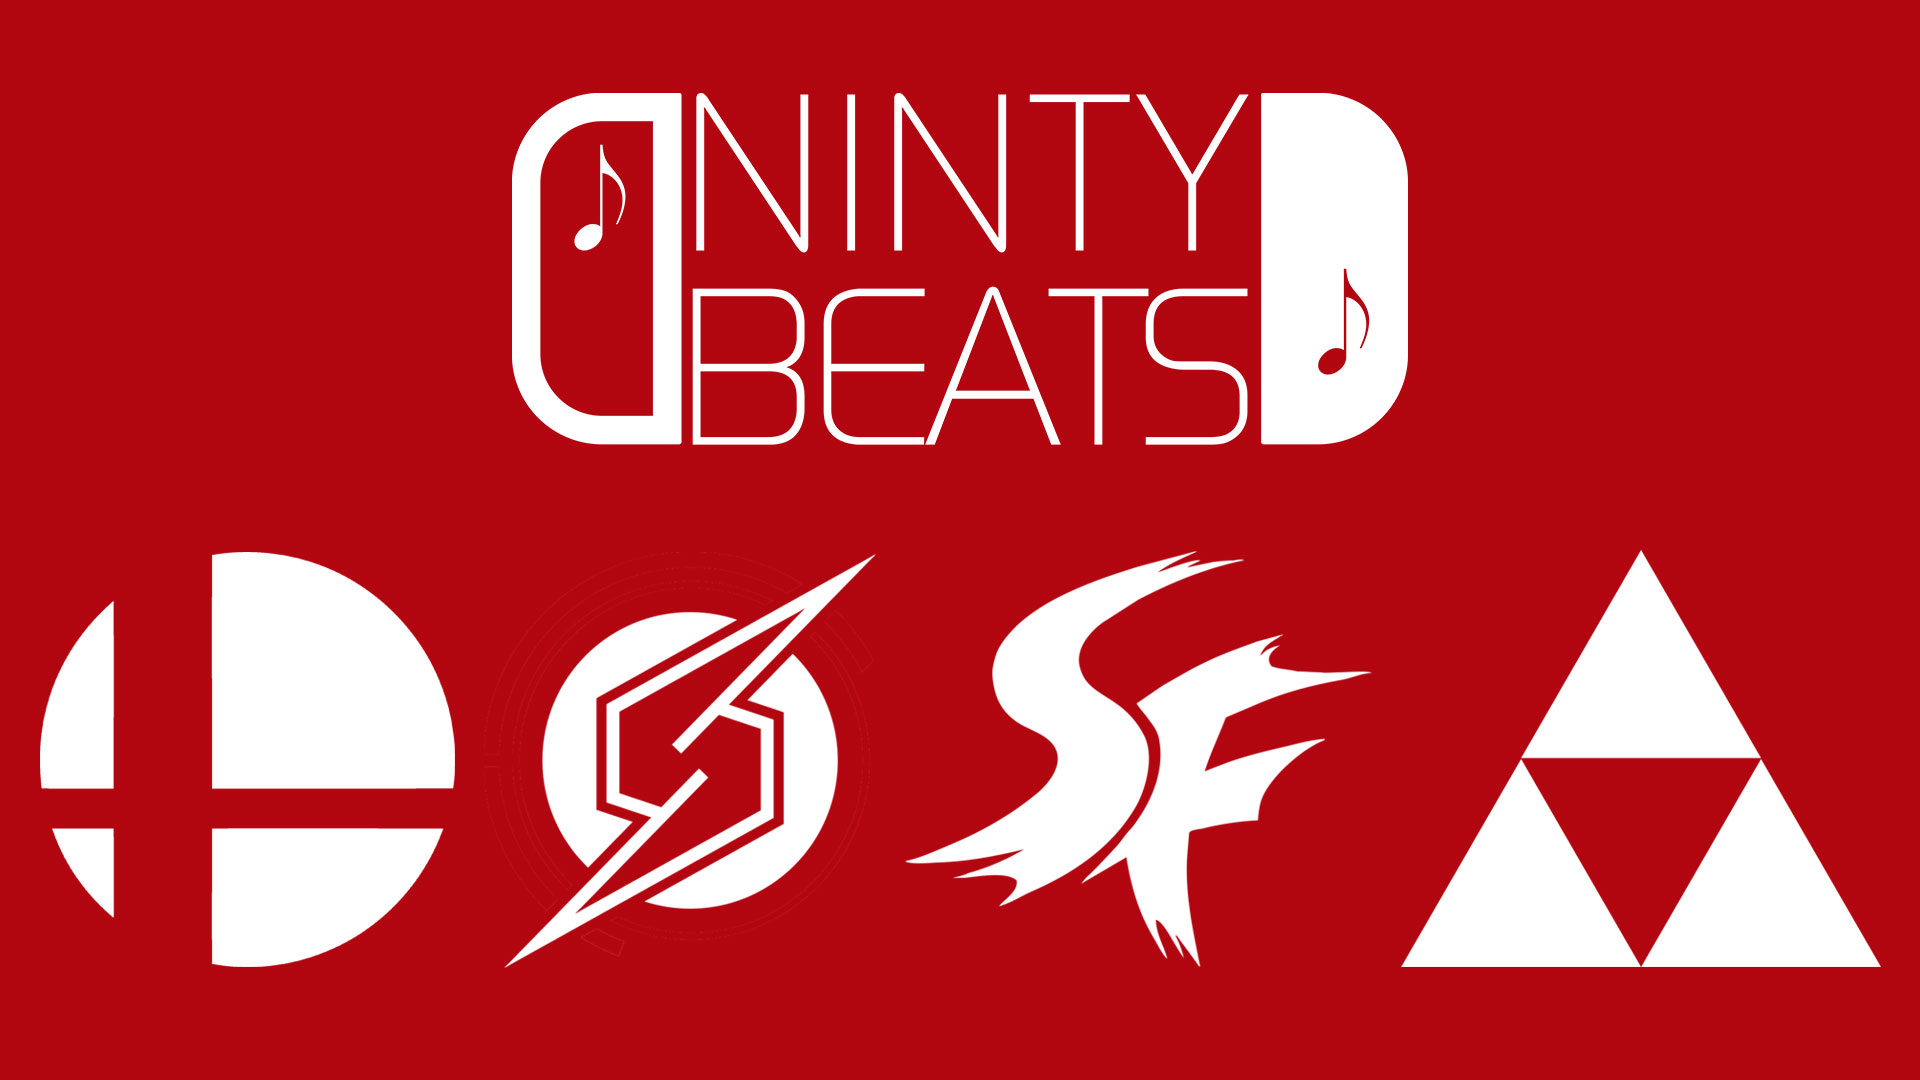 E3 2018 – The Smashing Return of NintyBeats